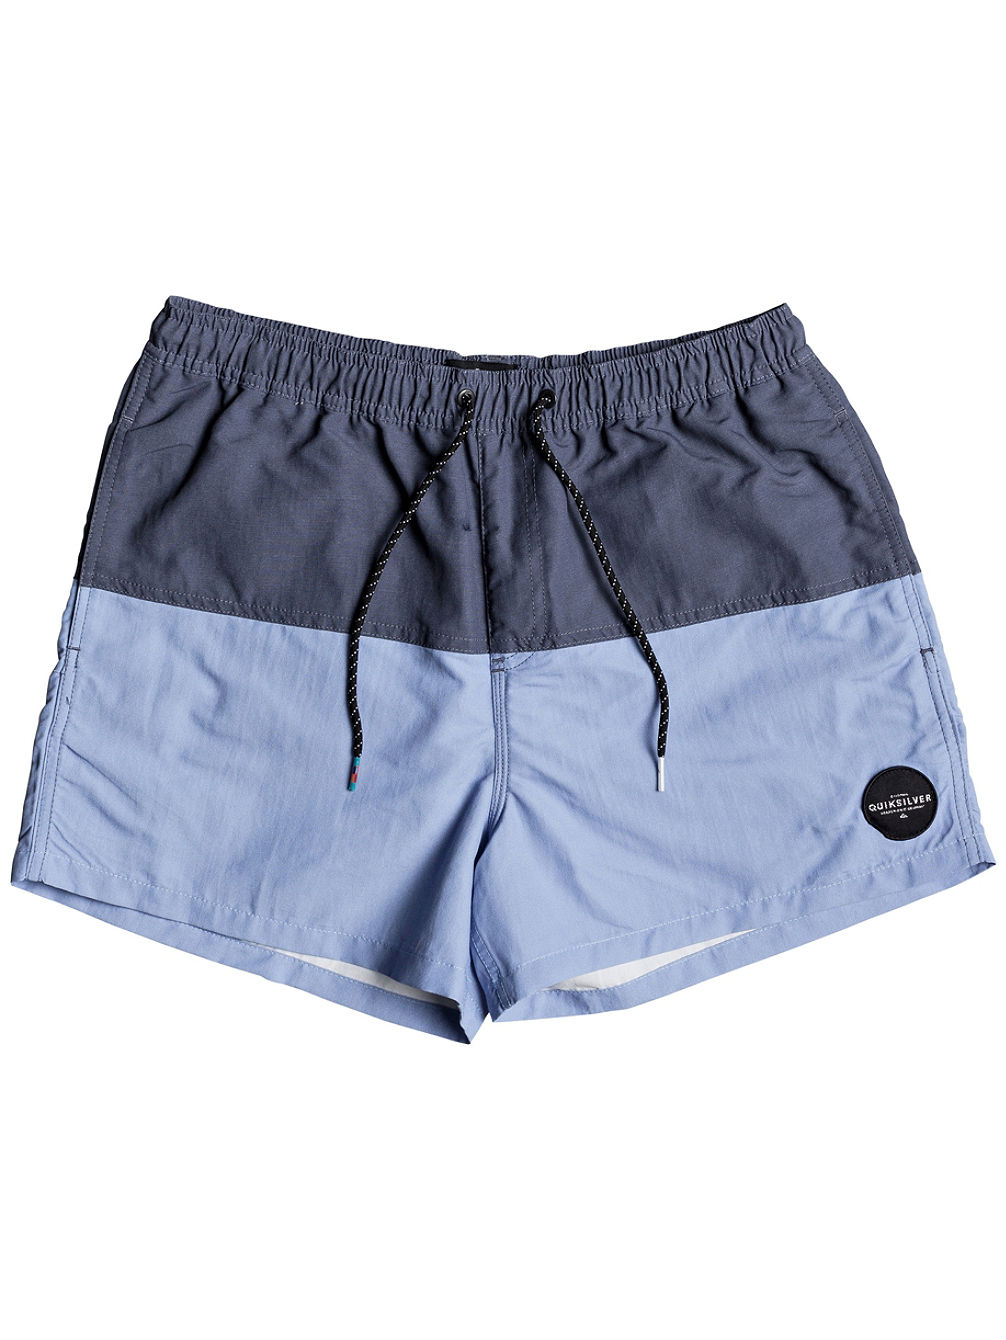 "Five Oh Volley 15"" Boardshorts"